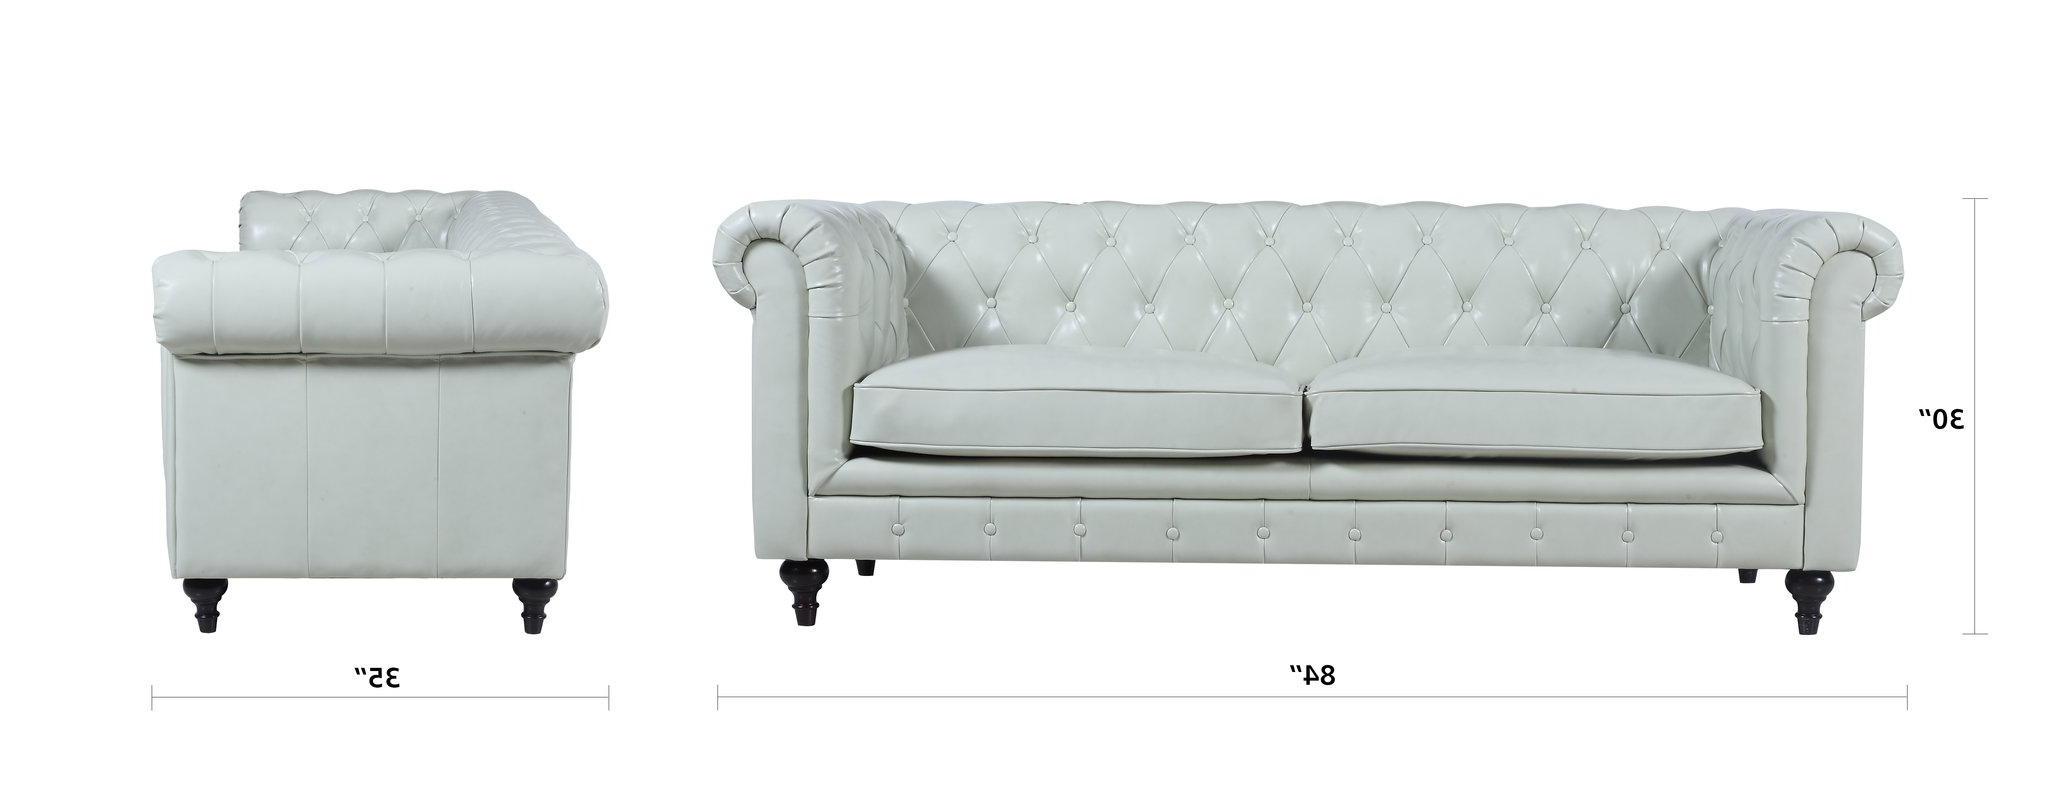 Tufted Leather Chesterfield Sofa & Reviews (View 10 of 20)